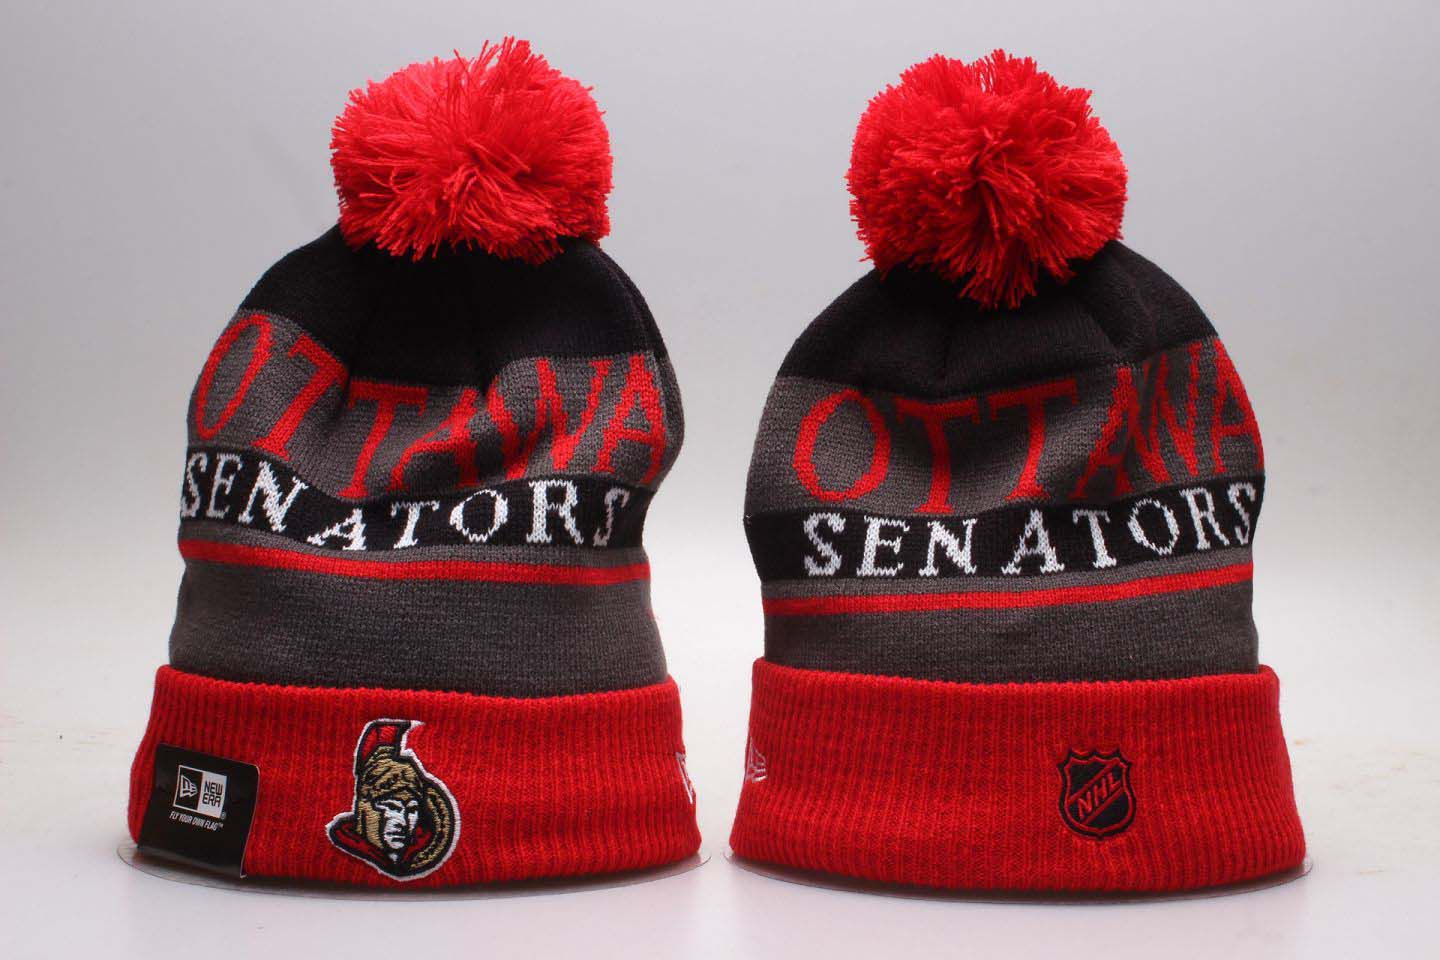 NHL Ottawa Senators Beanie hot hat